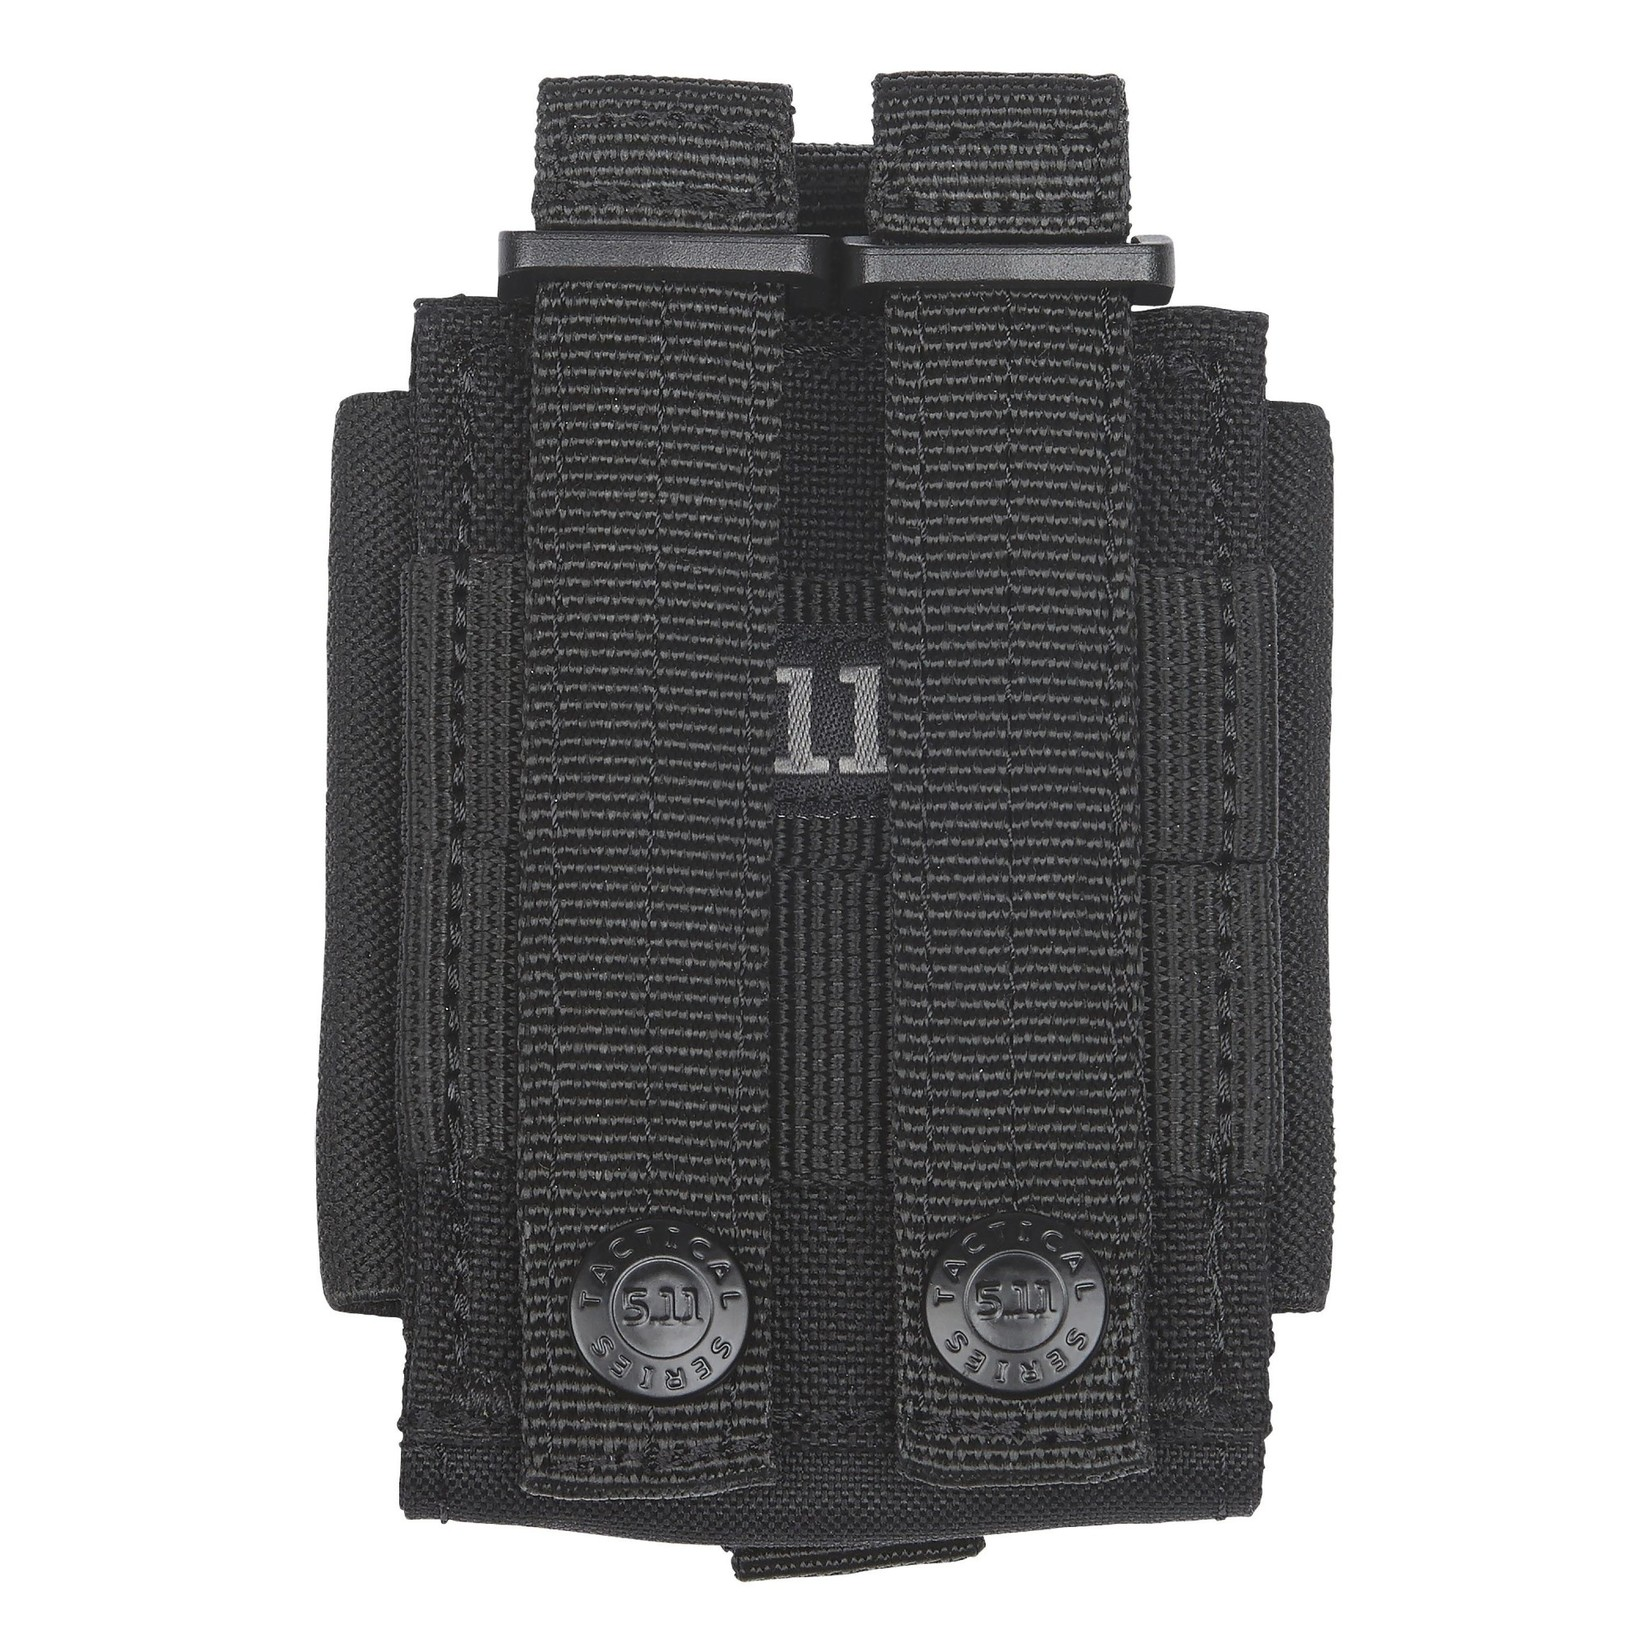 5.11 Tactical 5.11 Device/ Phone Case C5